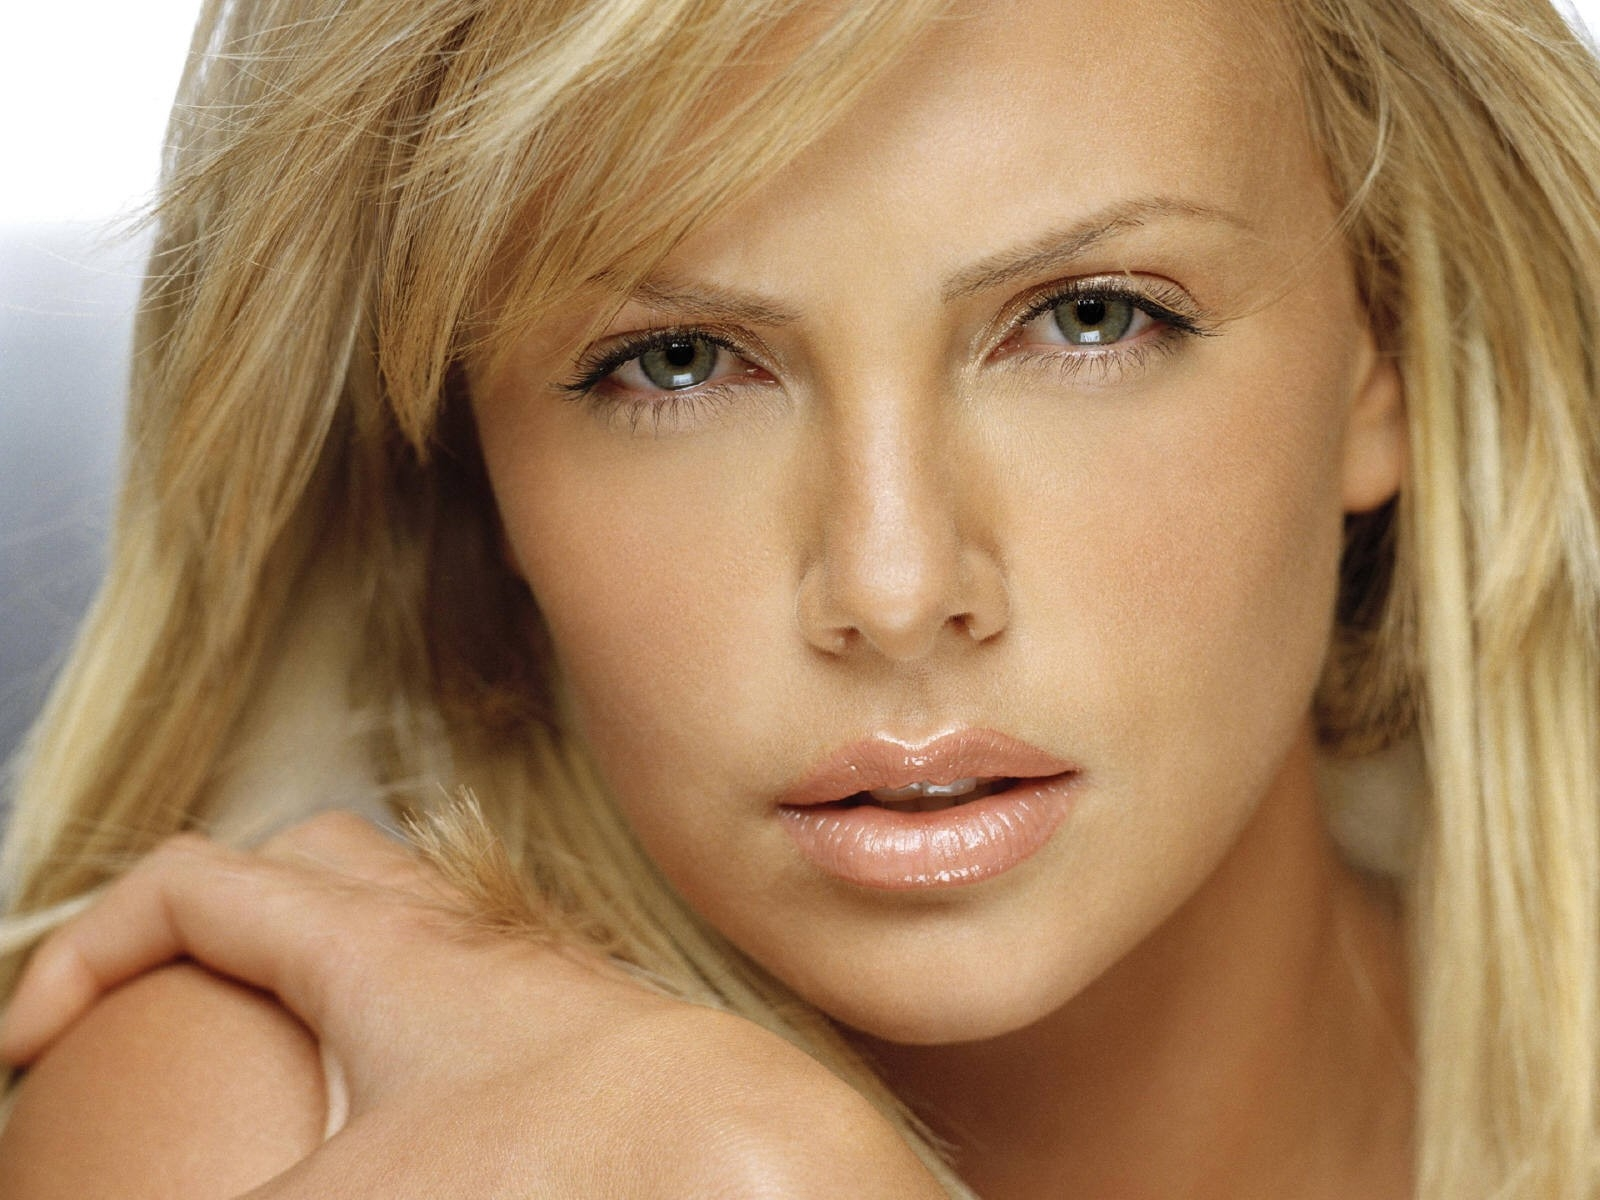 Charlize Theron. Download wallpaper. Posted by best at 3:49 PM